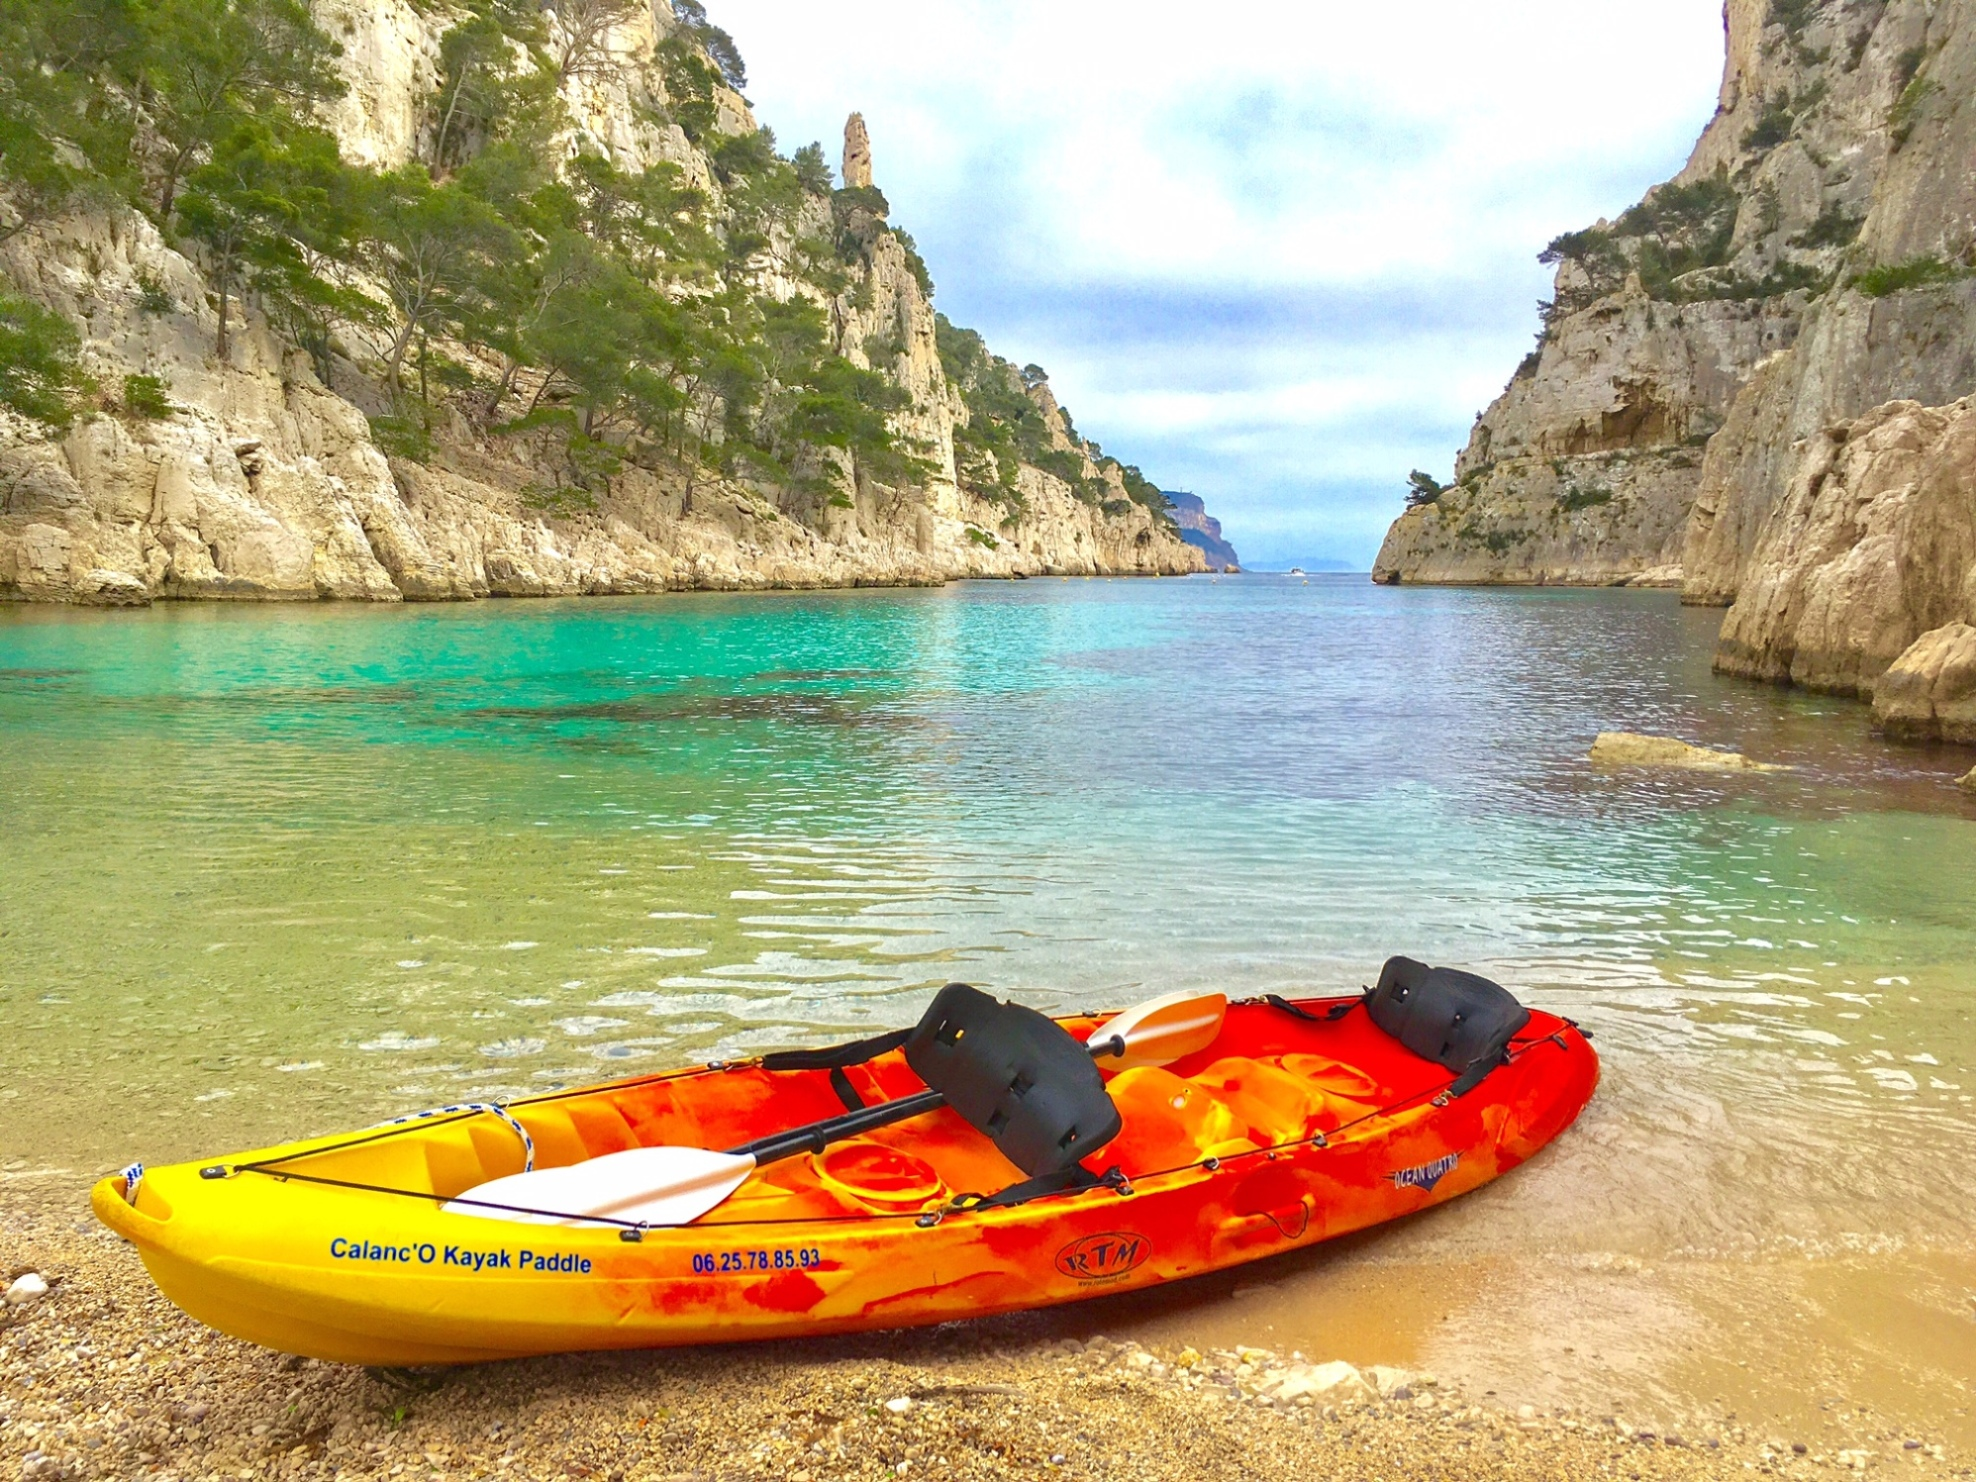 Location Canoe Cassis The Equipment Calanc O Kayak Paddle Cassis